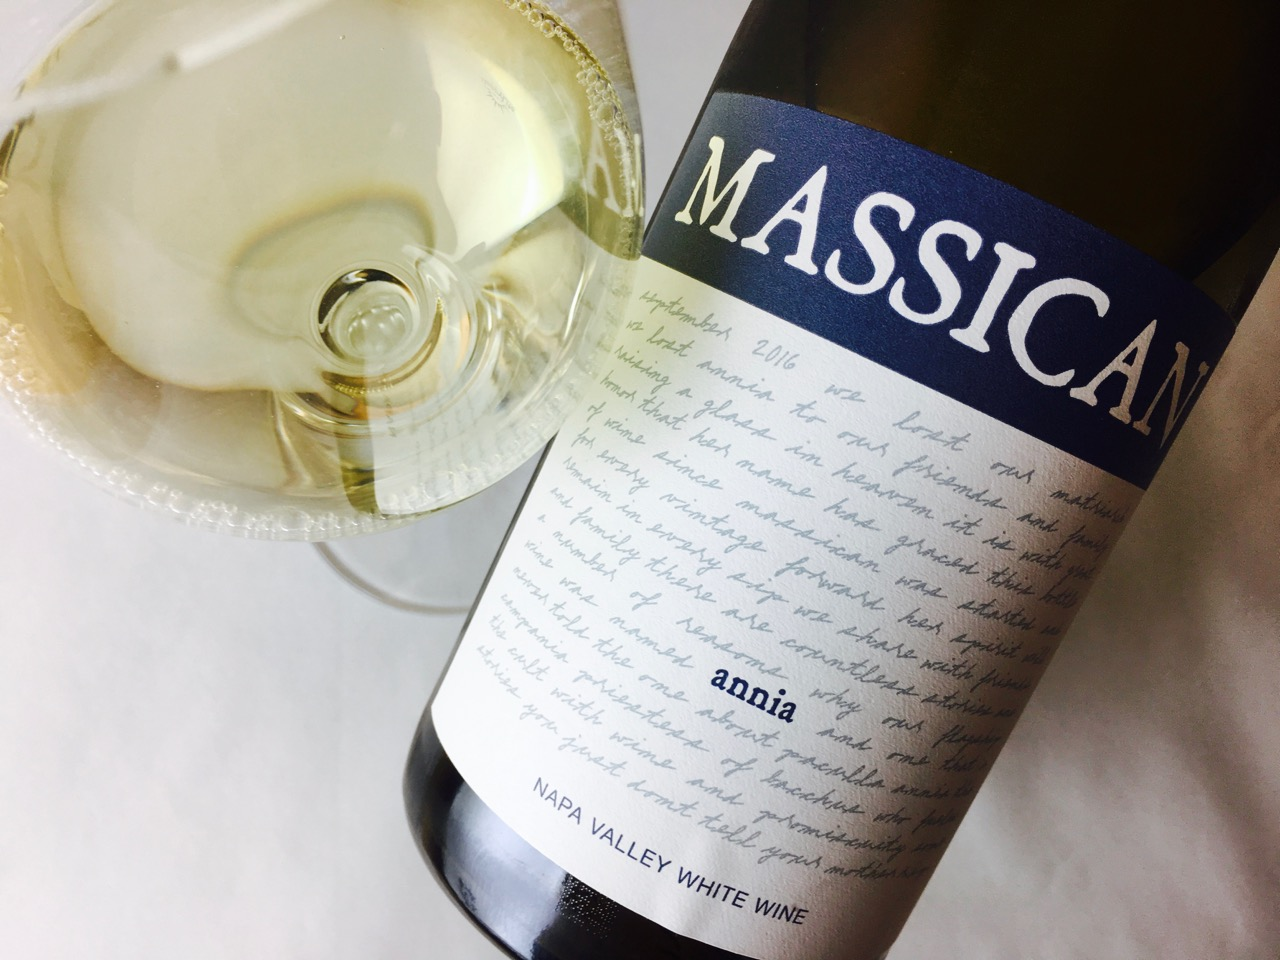 2016 Massican White Wine Annia Napa Valley